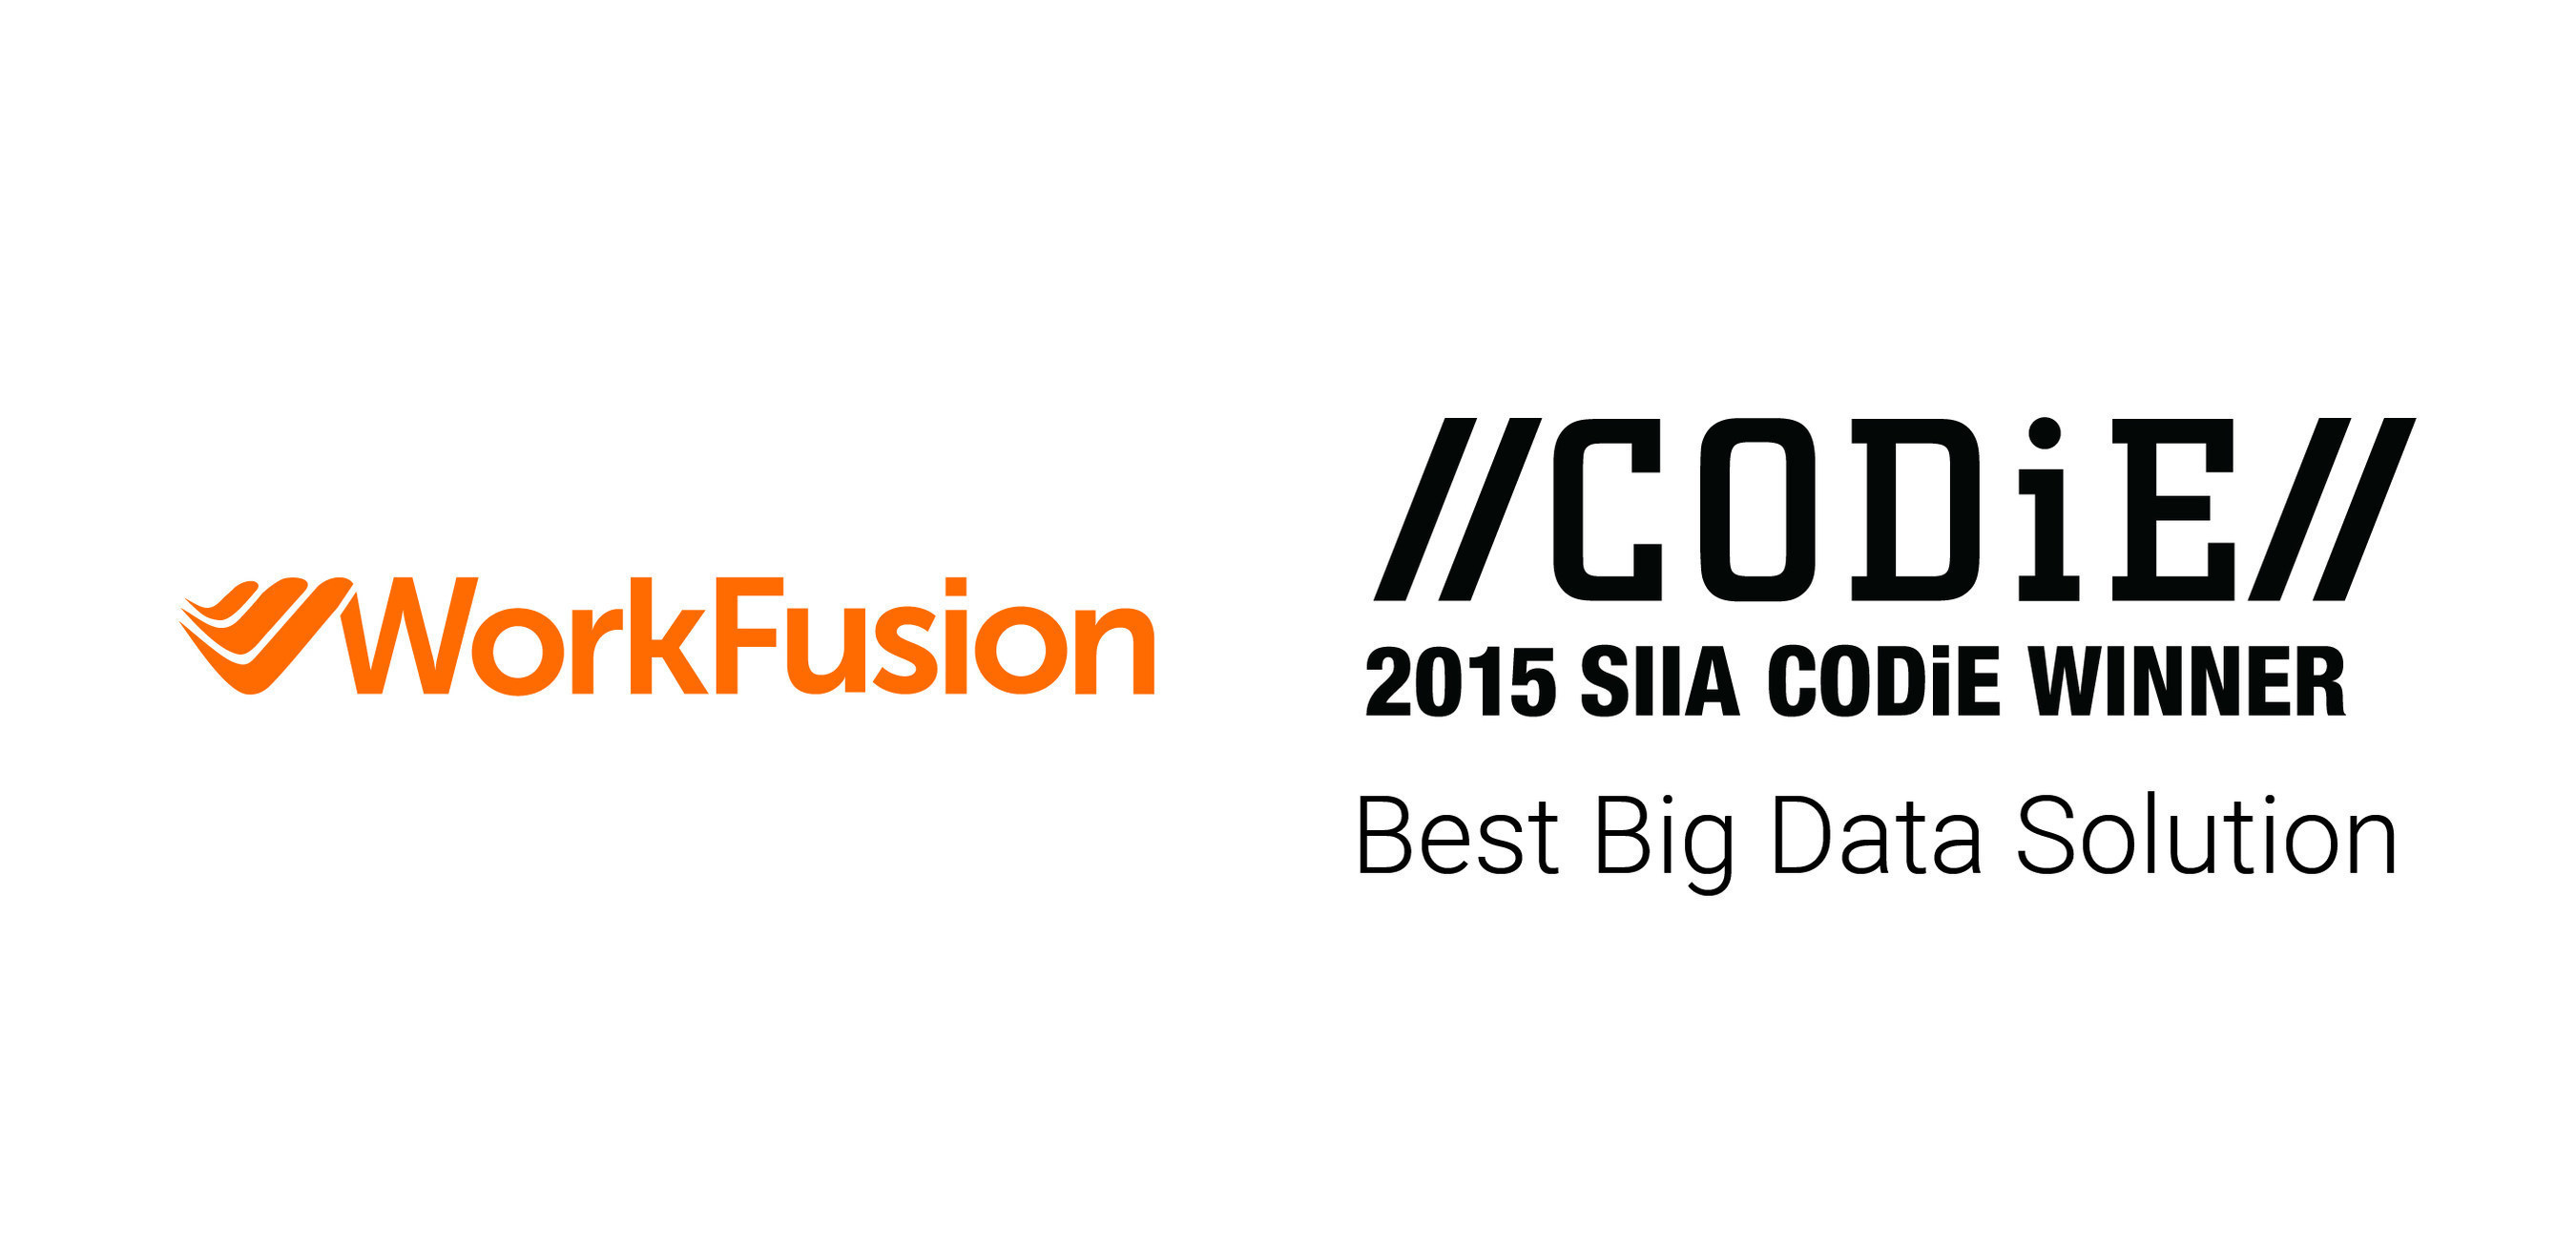 WorkFusion Wins SIIA Software CODiE Award for Best Big Data Solution